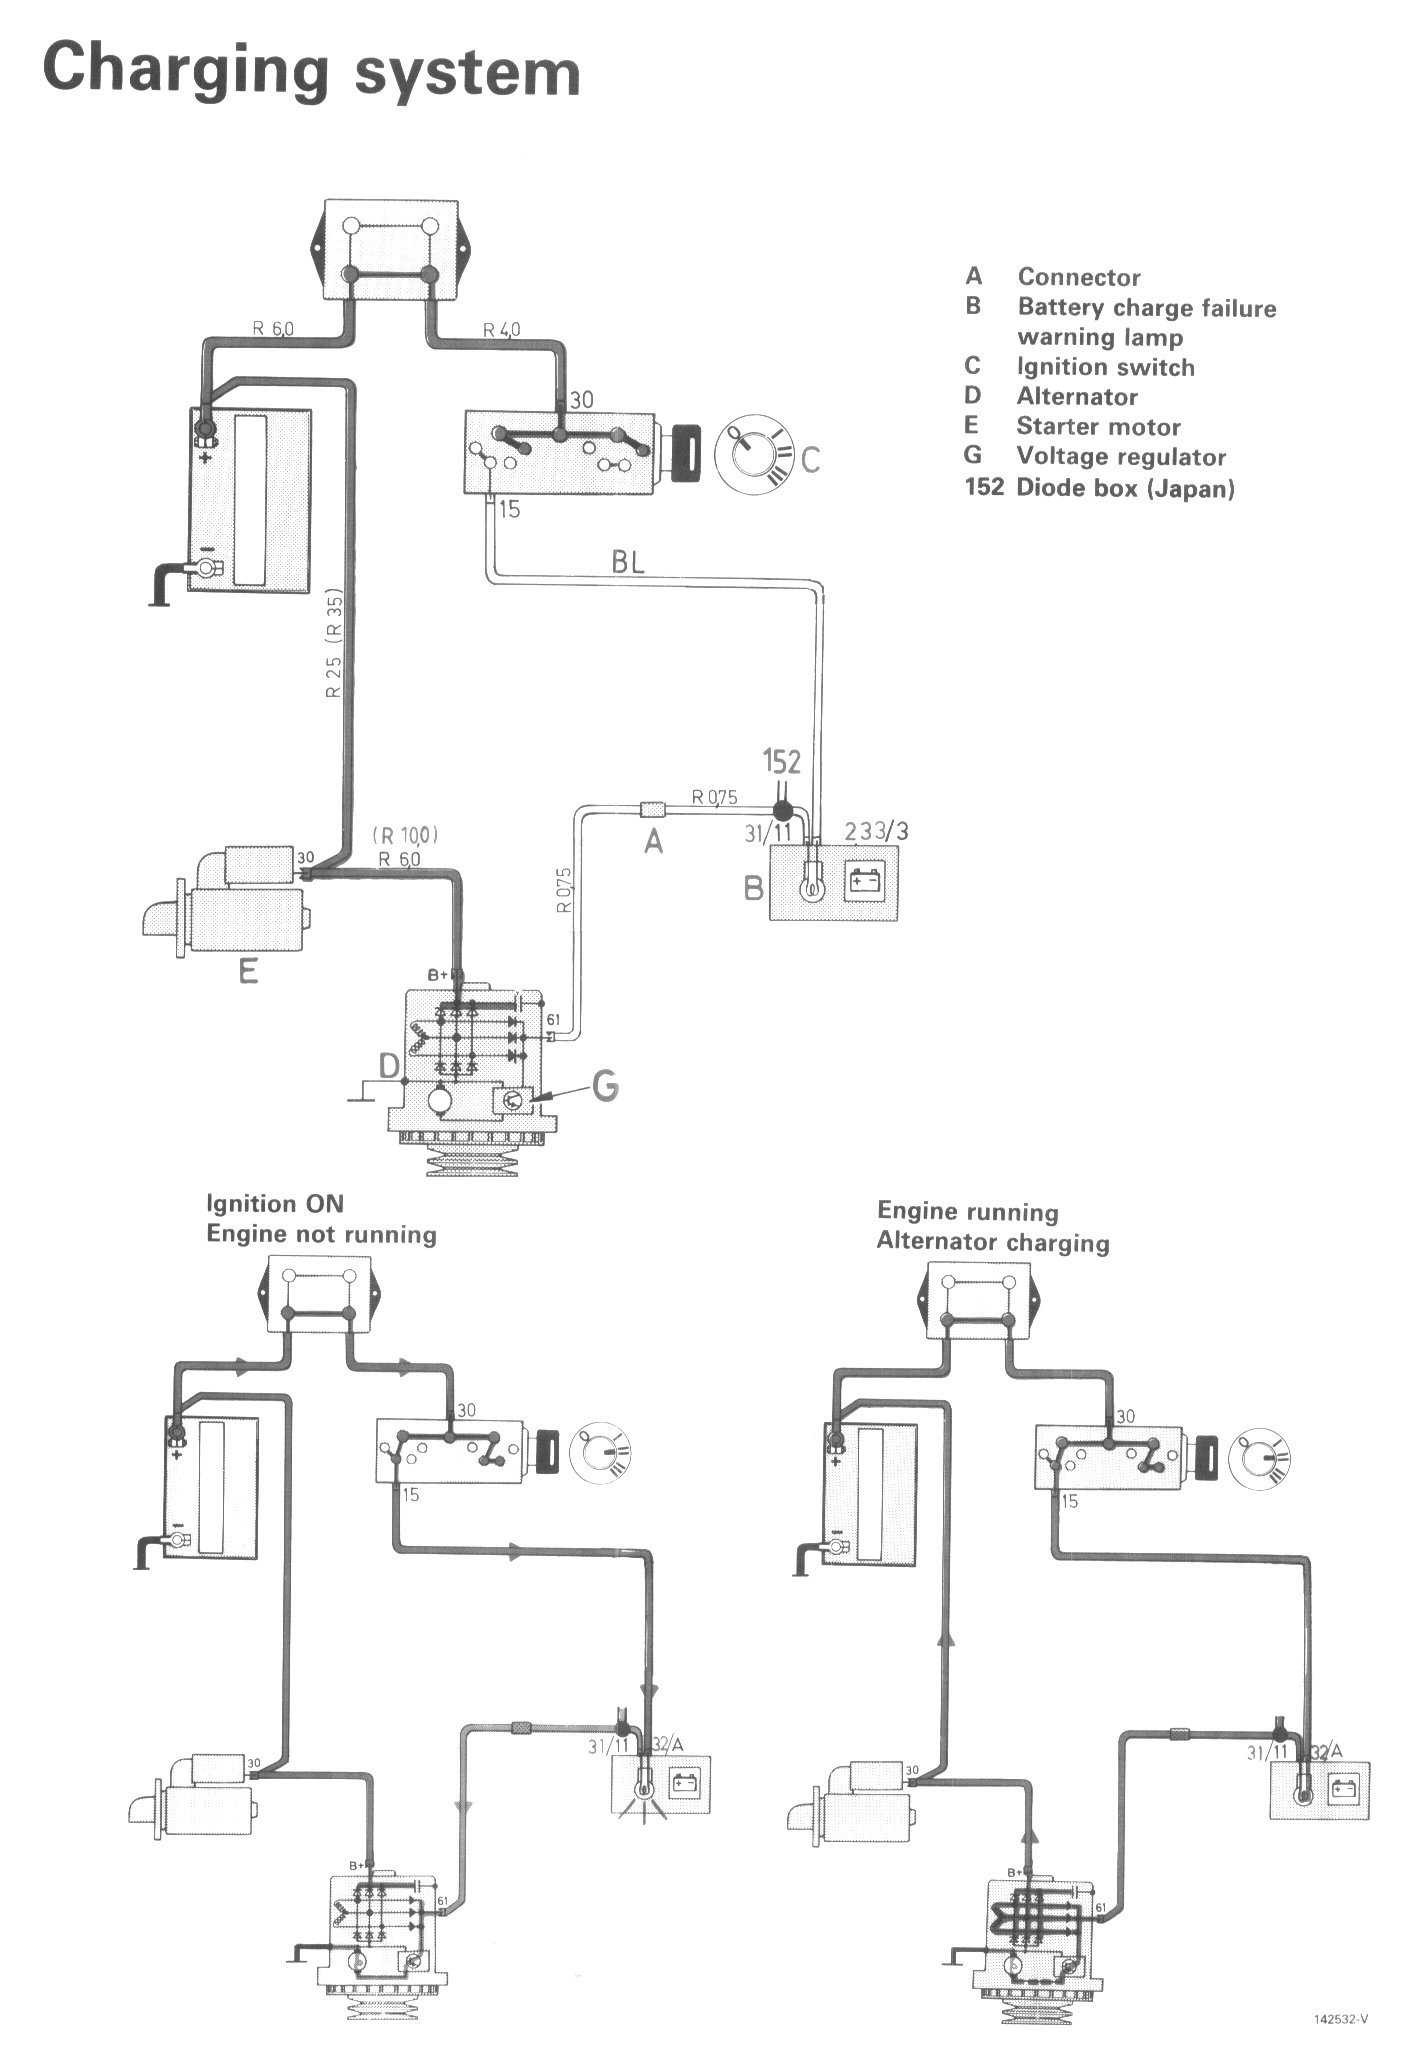 hight resolution of wiring diagram 1990 volvo wagon wiring diagram inside volvo 240 wiring diagram 1990 wiring diagram advance